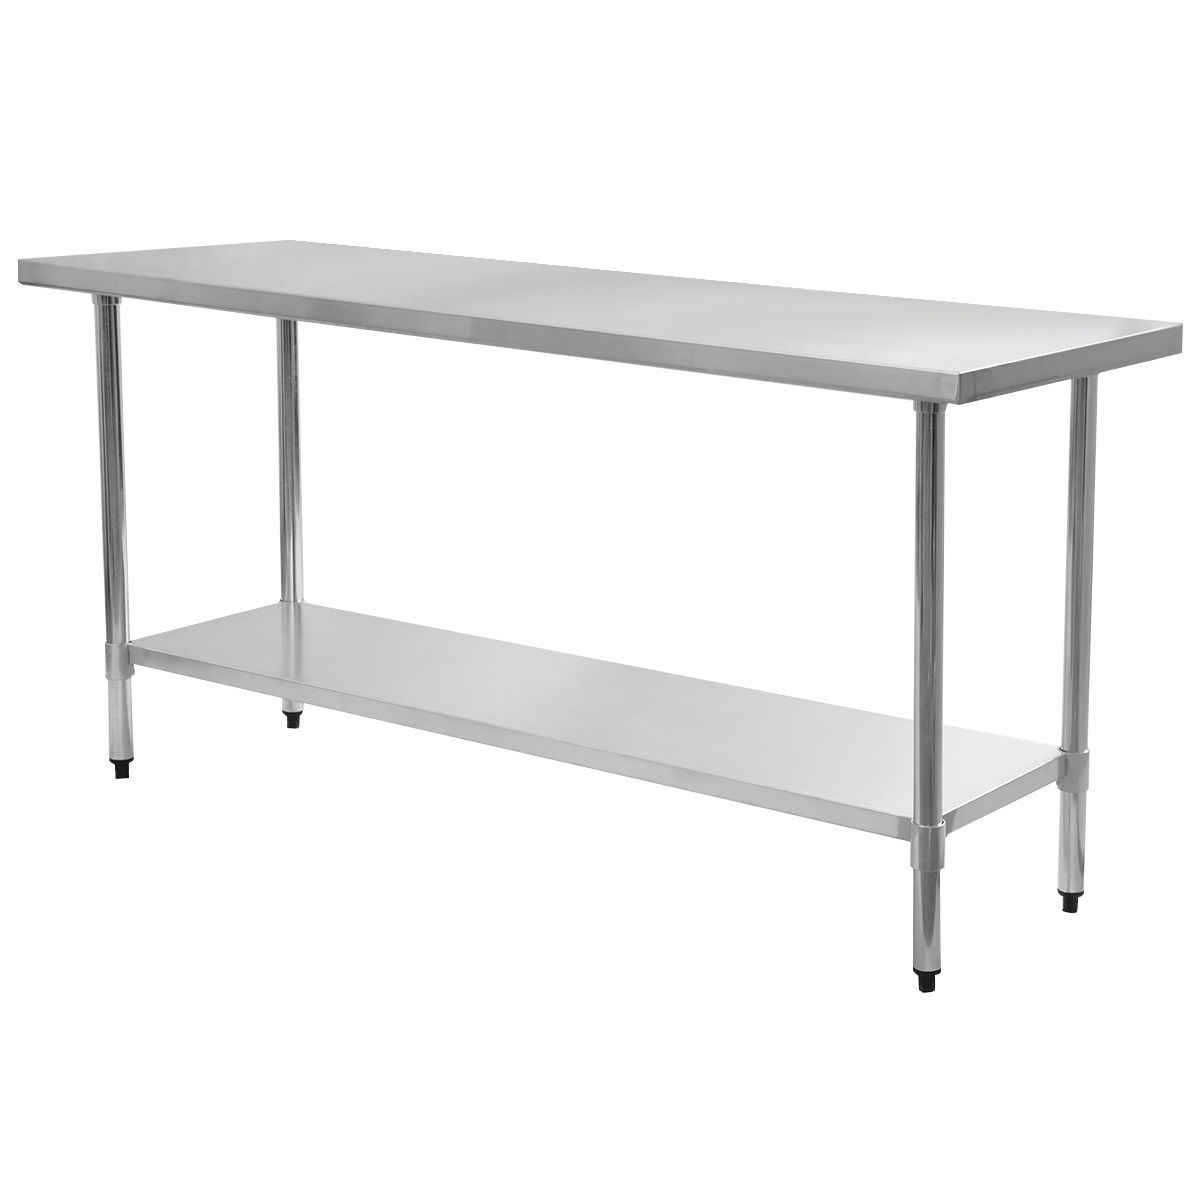 X Stainless Steel Work Prep Table Commercial Kitchen - 4 foot stainless steel table